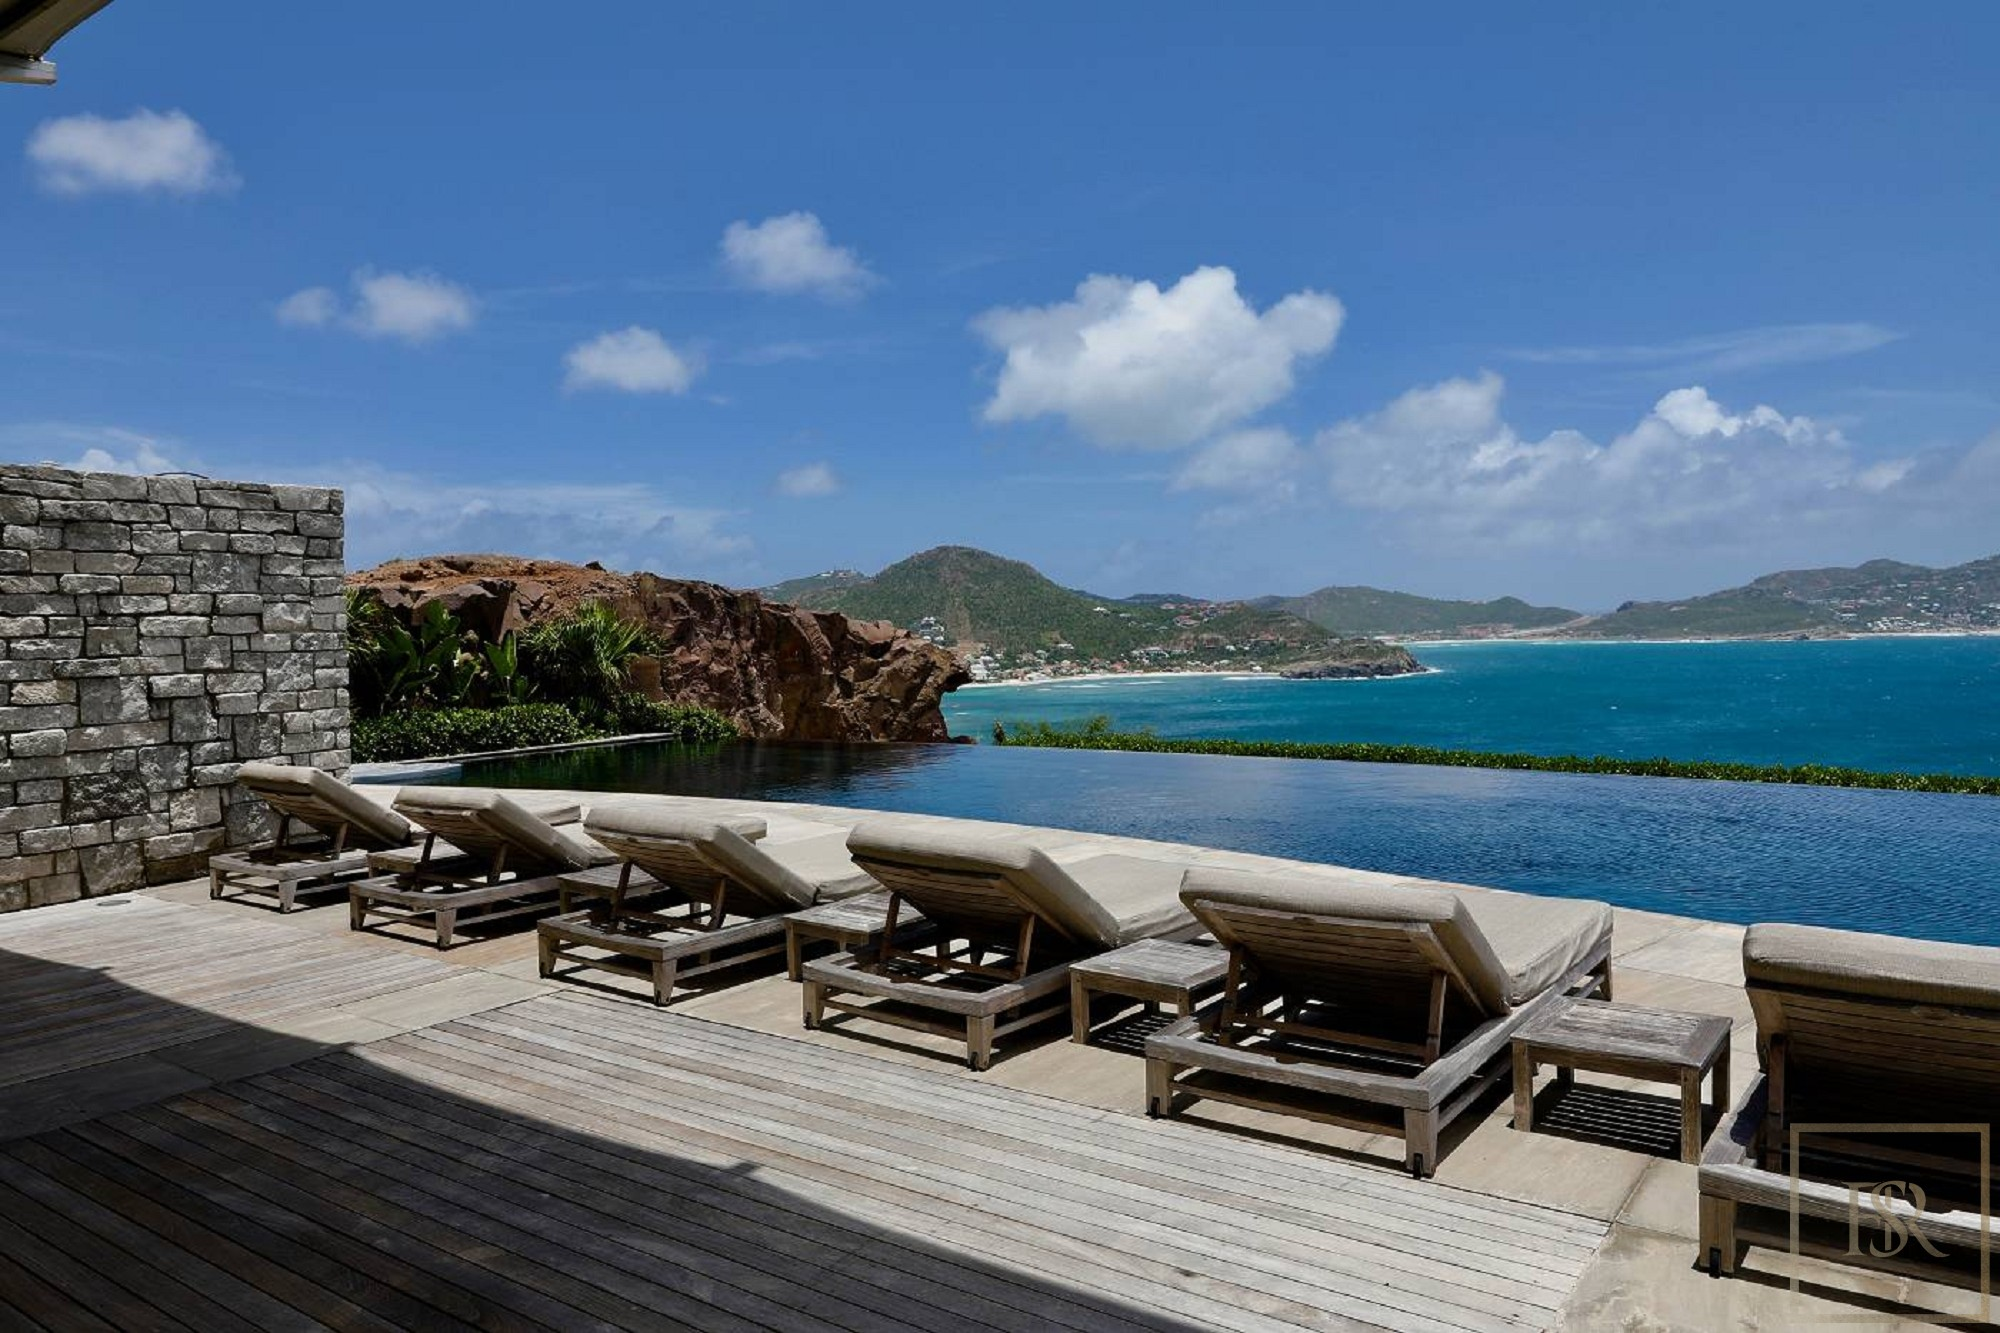 For super rich ultra luxury real estate properties homes, most expensive houses, rent unique penthouse apartment and ultimate villa in St Barth - Pointe Milou St Barth St. Barthélemy for rent holiday